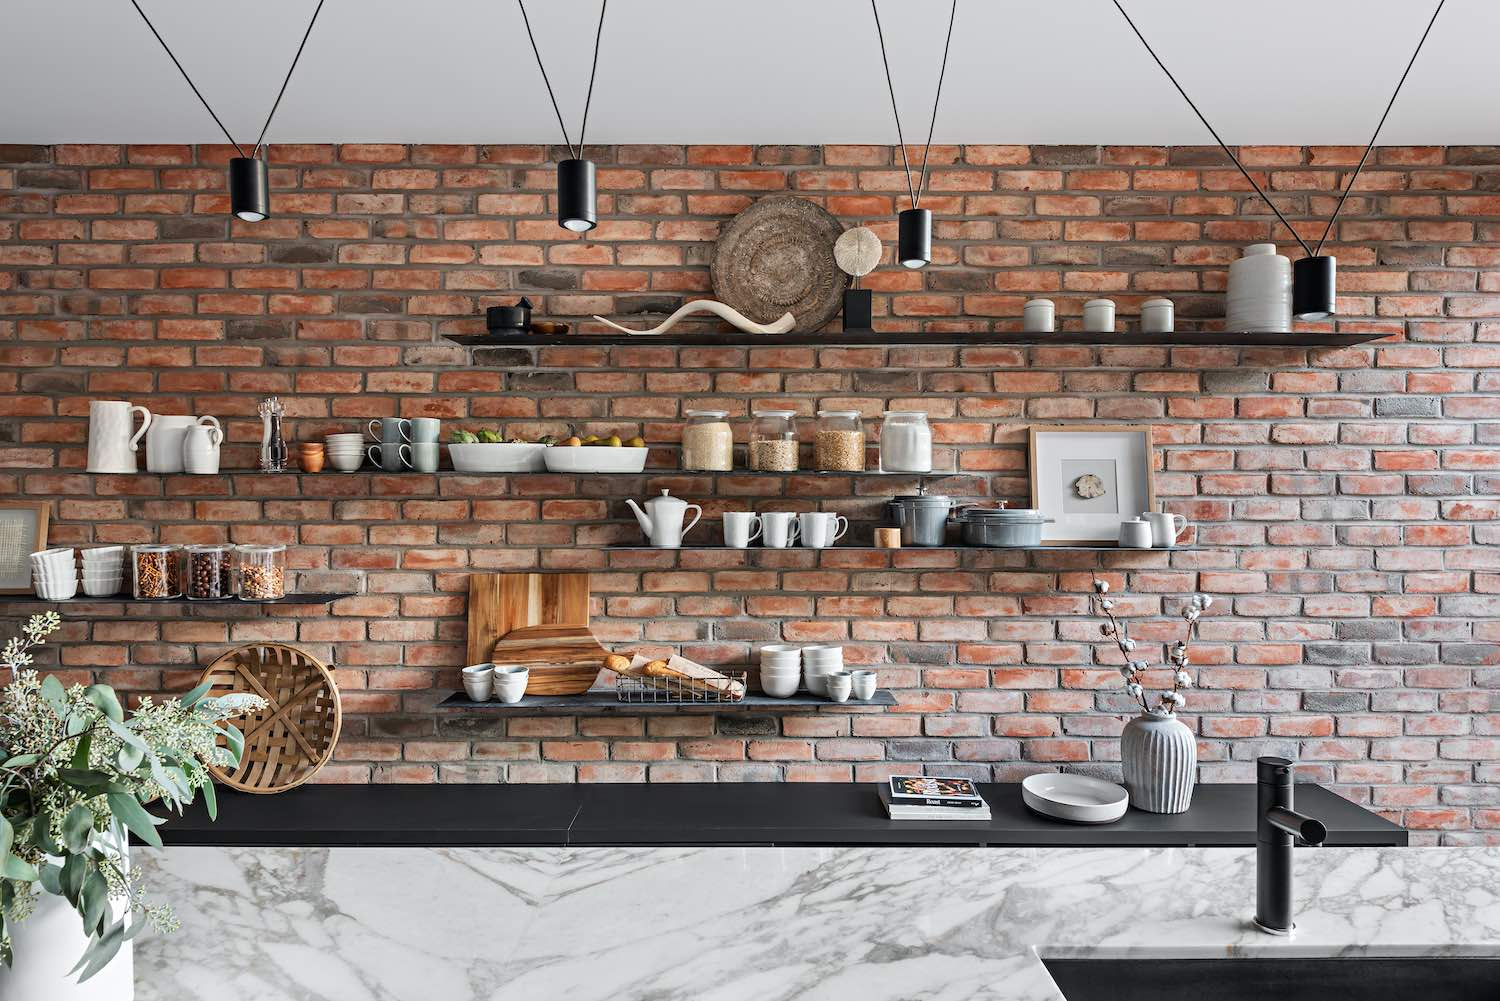 shelves on the brick wall